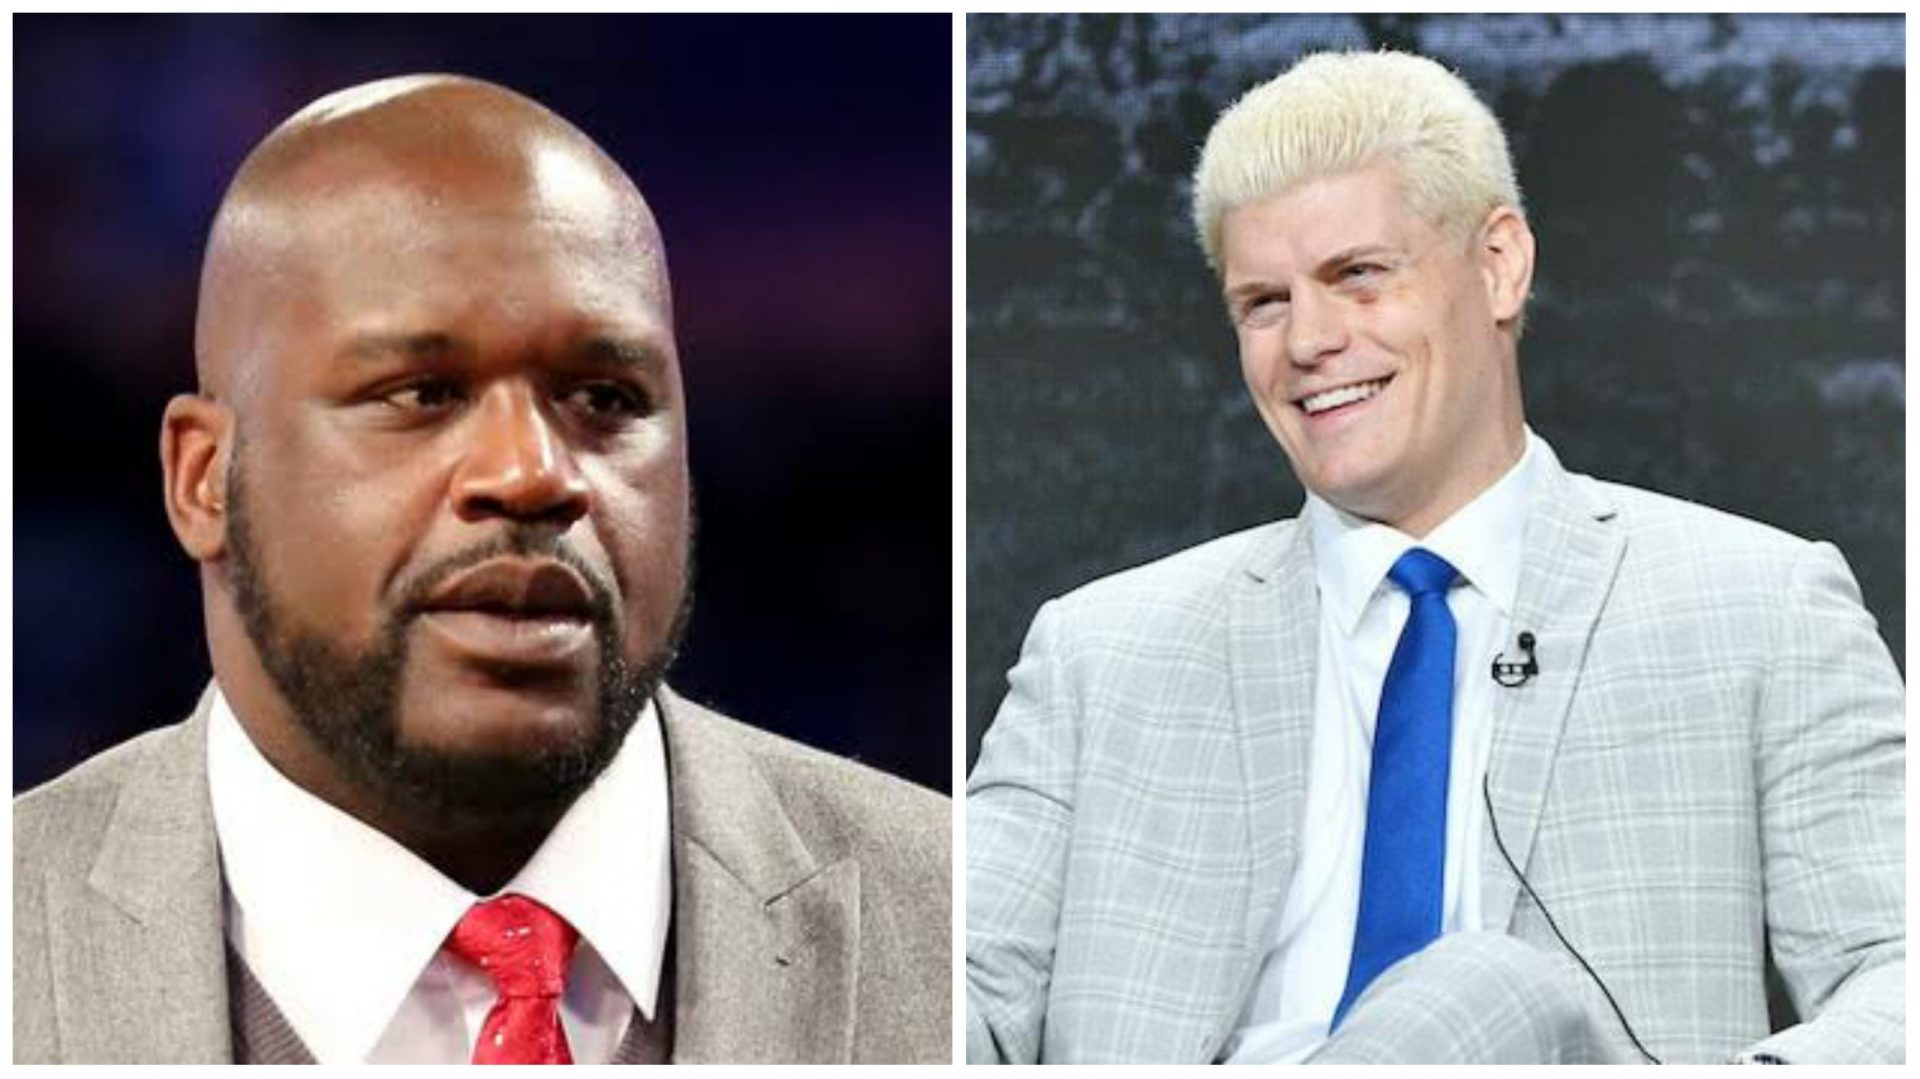 Cody Rhodes comments on Shaq ahead of Dynamite match - THE SPORTS ROOM